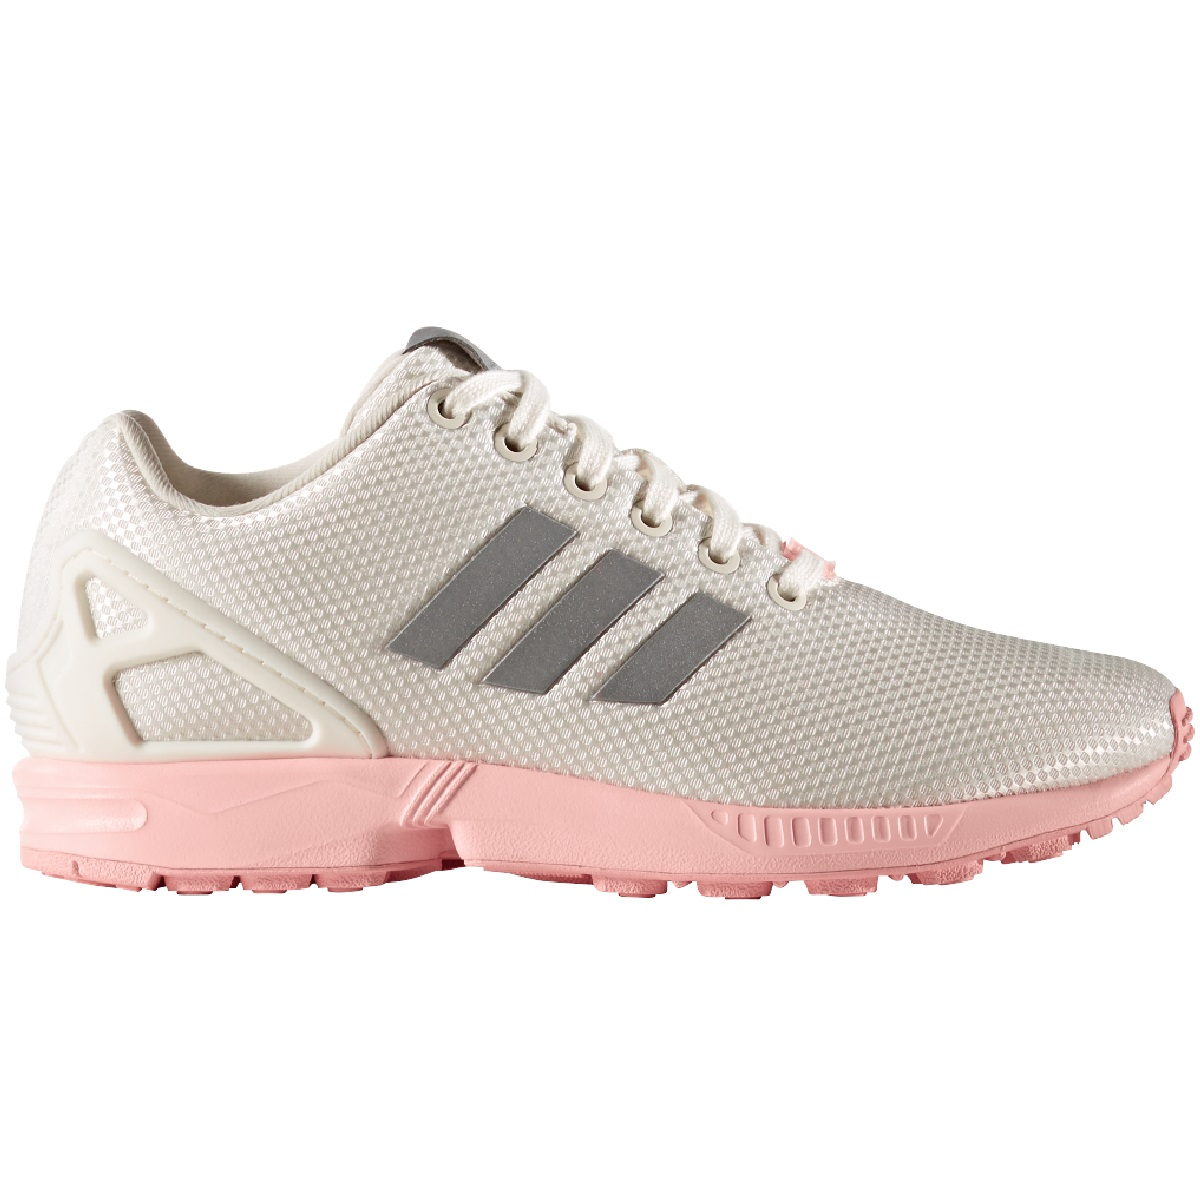 adidas originals zx flux sneaker damen schuhe wei rosa ba7642 sport klingenmaier. Black Bedroom Furniture Sets. Home Design Ideas